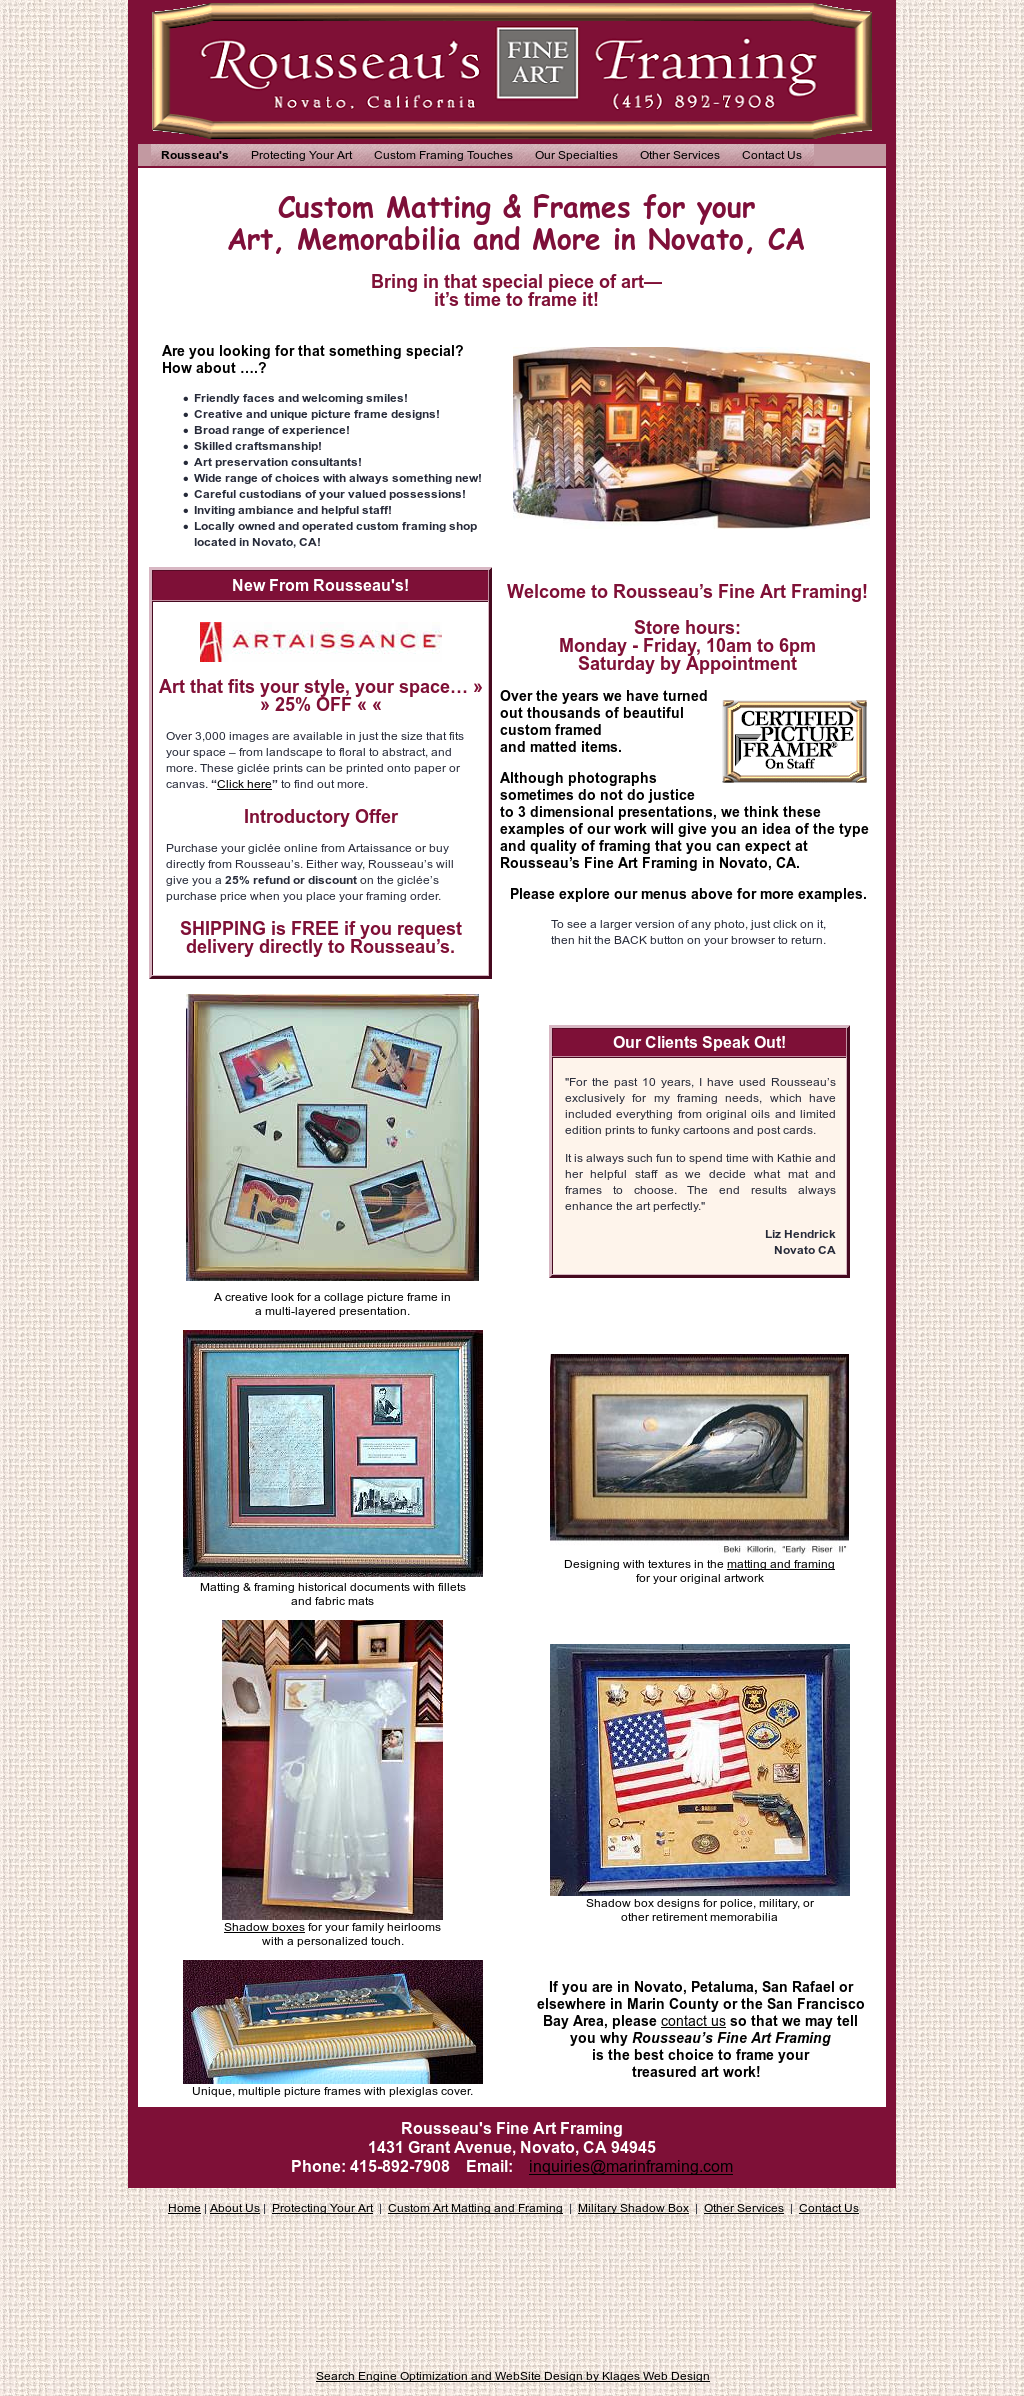 Rousseaus Fine Art Framing Competitors, Revenue and Employees ...